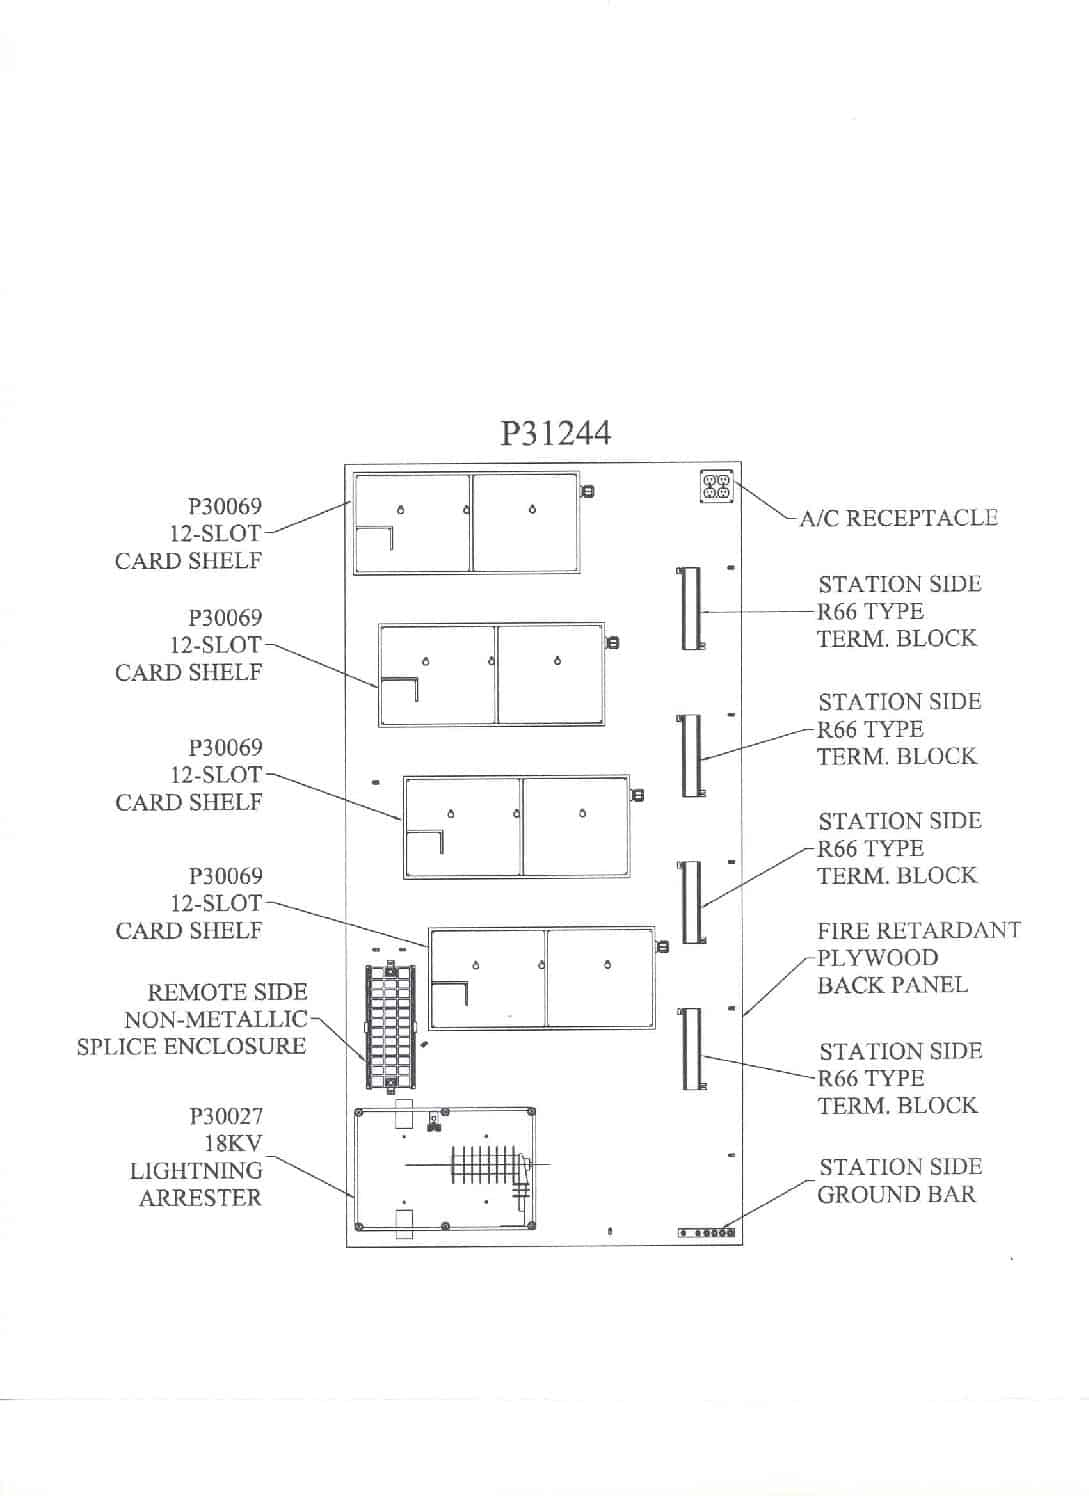 P31244 Turnkey Protection Packages – 12 slot PDF thumbnail